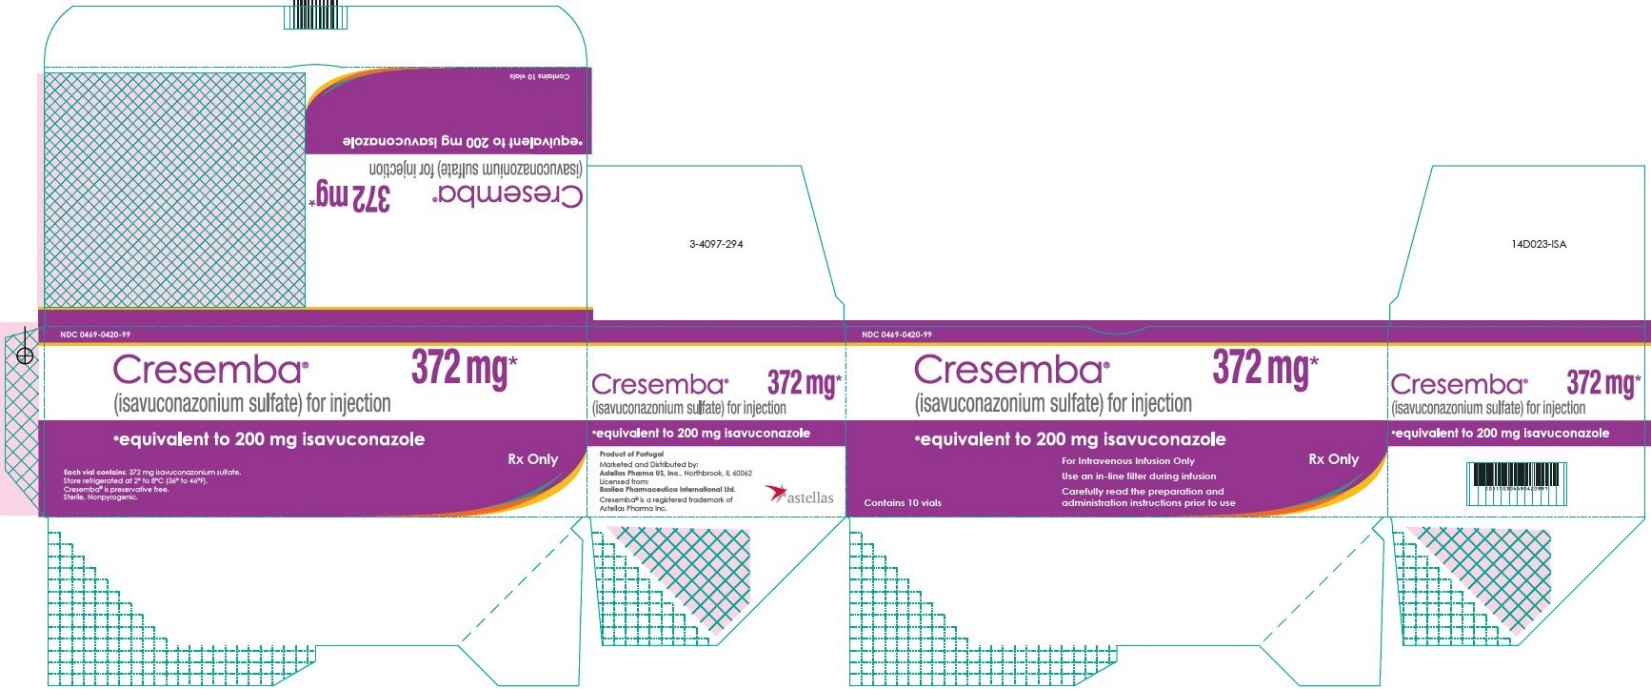 Cresemba (isavuconazonium sulfate) for injection 372 mg vial carton label